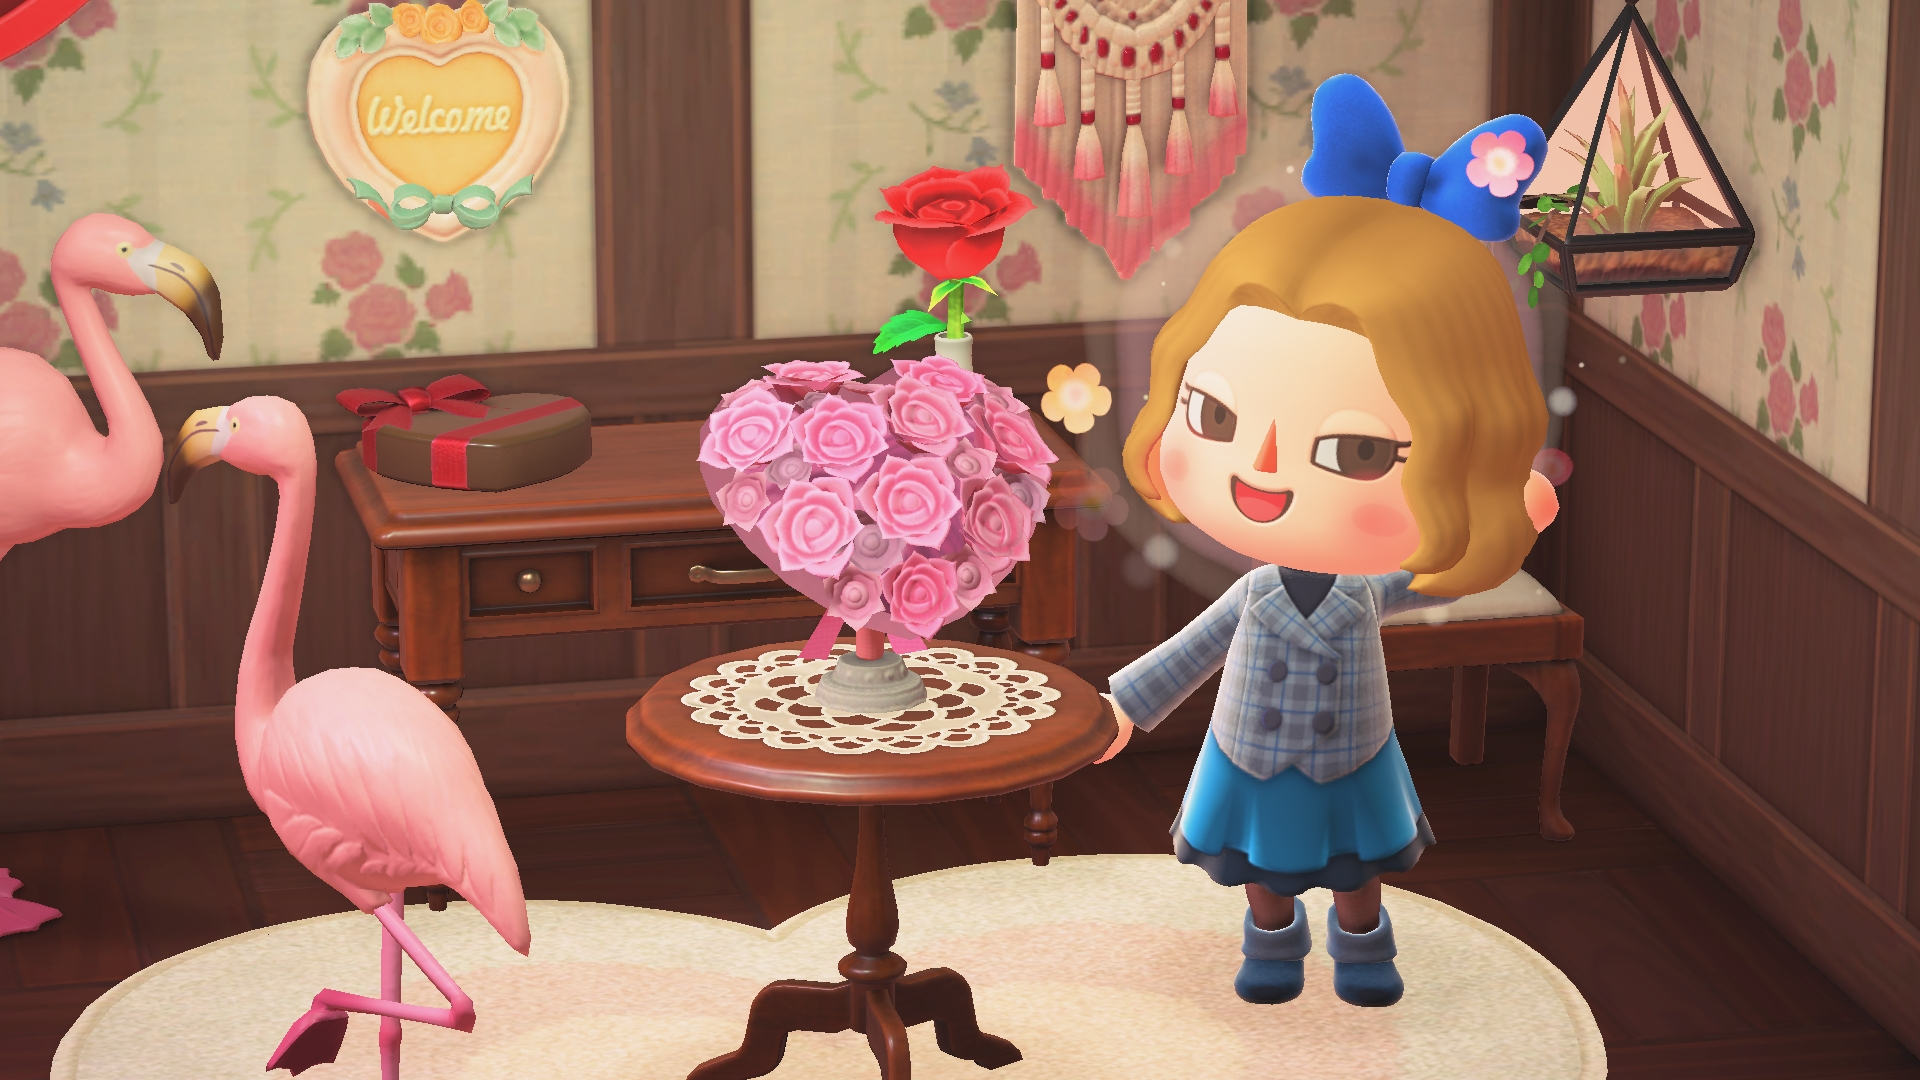 Animal Crossing Valentine's Day Sees Villagers Shower You With Gifts - DualShockers